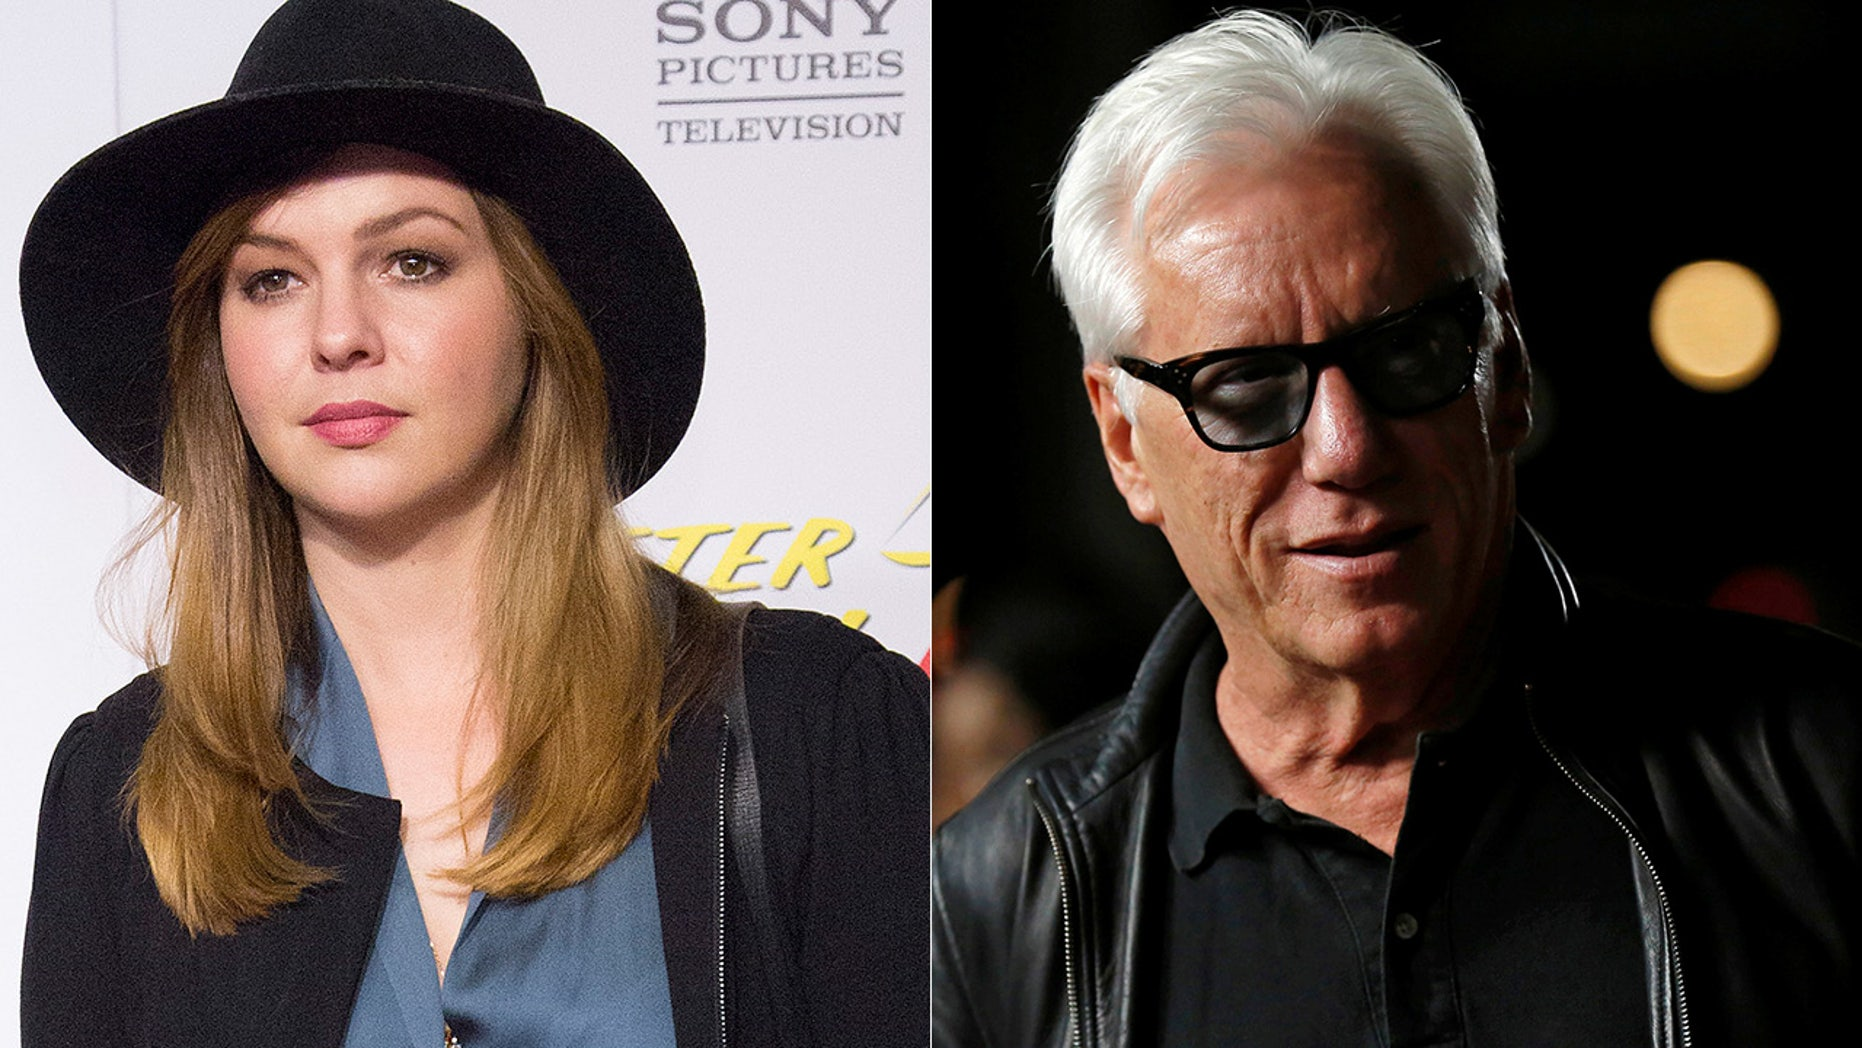 Woods was recently in a Twitter feud with actress Amber Tamblyn, who accused him of trying to pick her up when she was 16.